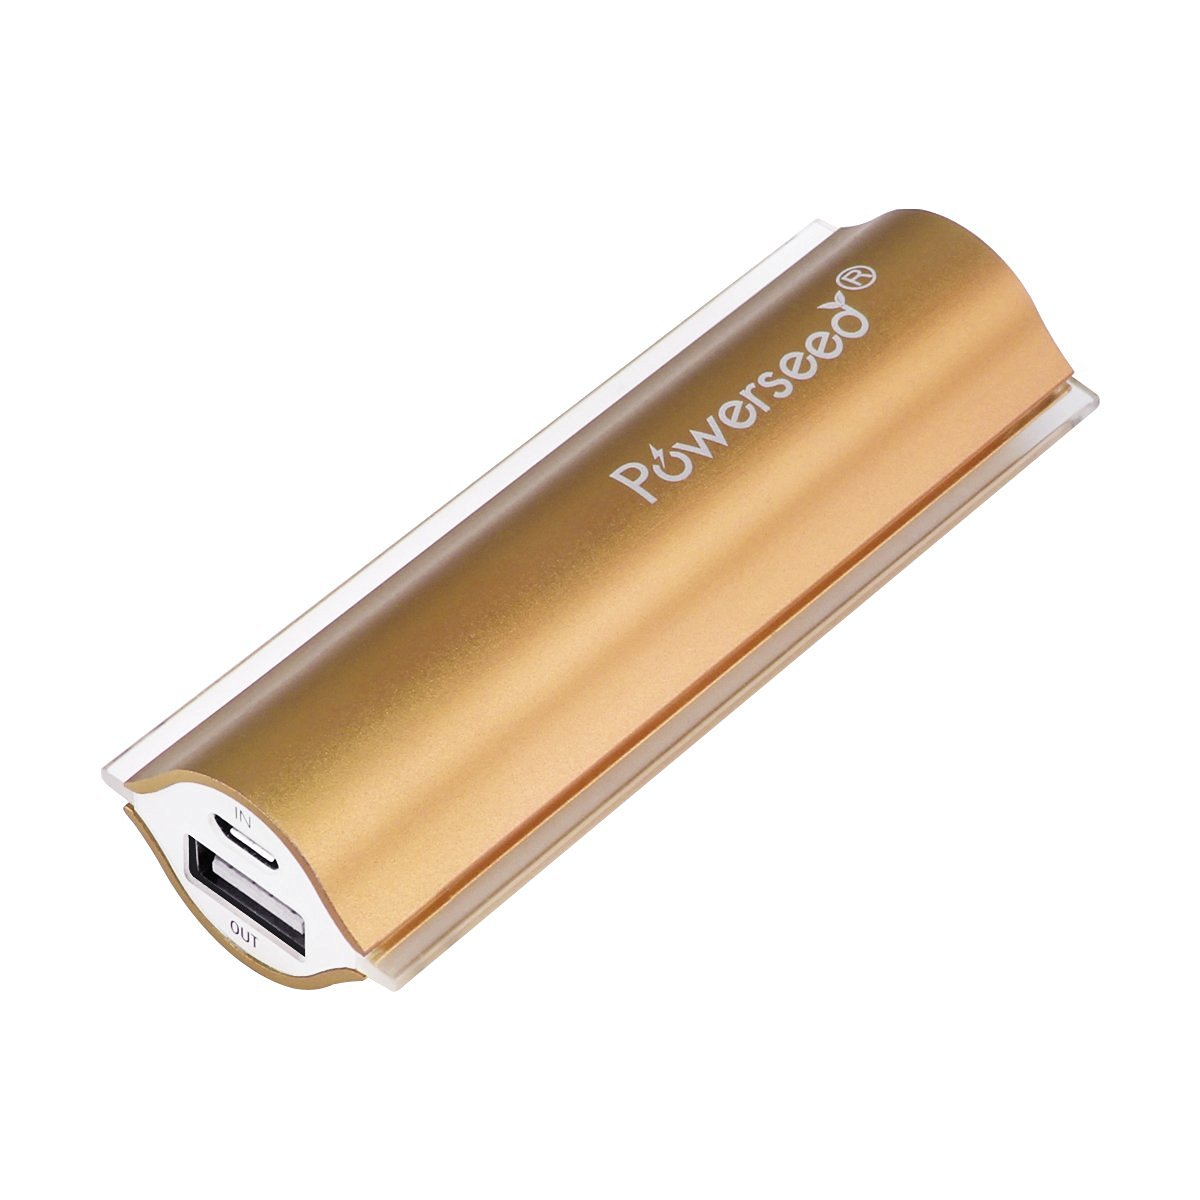 Powerseed Angel Eye PS2400 Gold Power Bank USB Portable Charger for iPhone 4, iPhone 5, iPhone 5S, iPhone 5C, iPhone 6, Android Phones, iPad, Android Tablet, Windows Tablet, Go Pro Hero Camera, PSP, Nintendo 3DS, Sony Playstation Vita and more